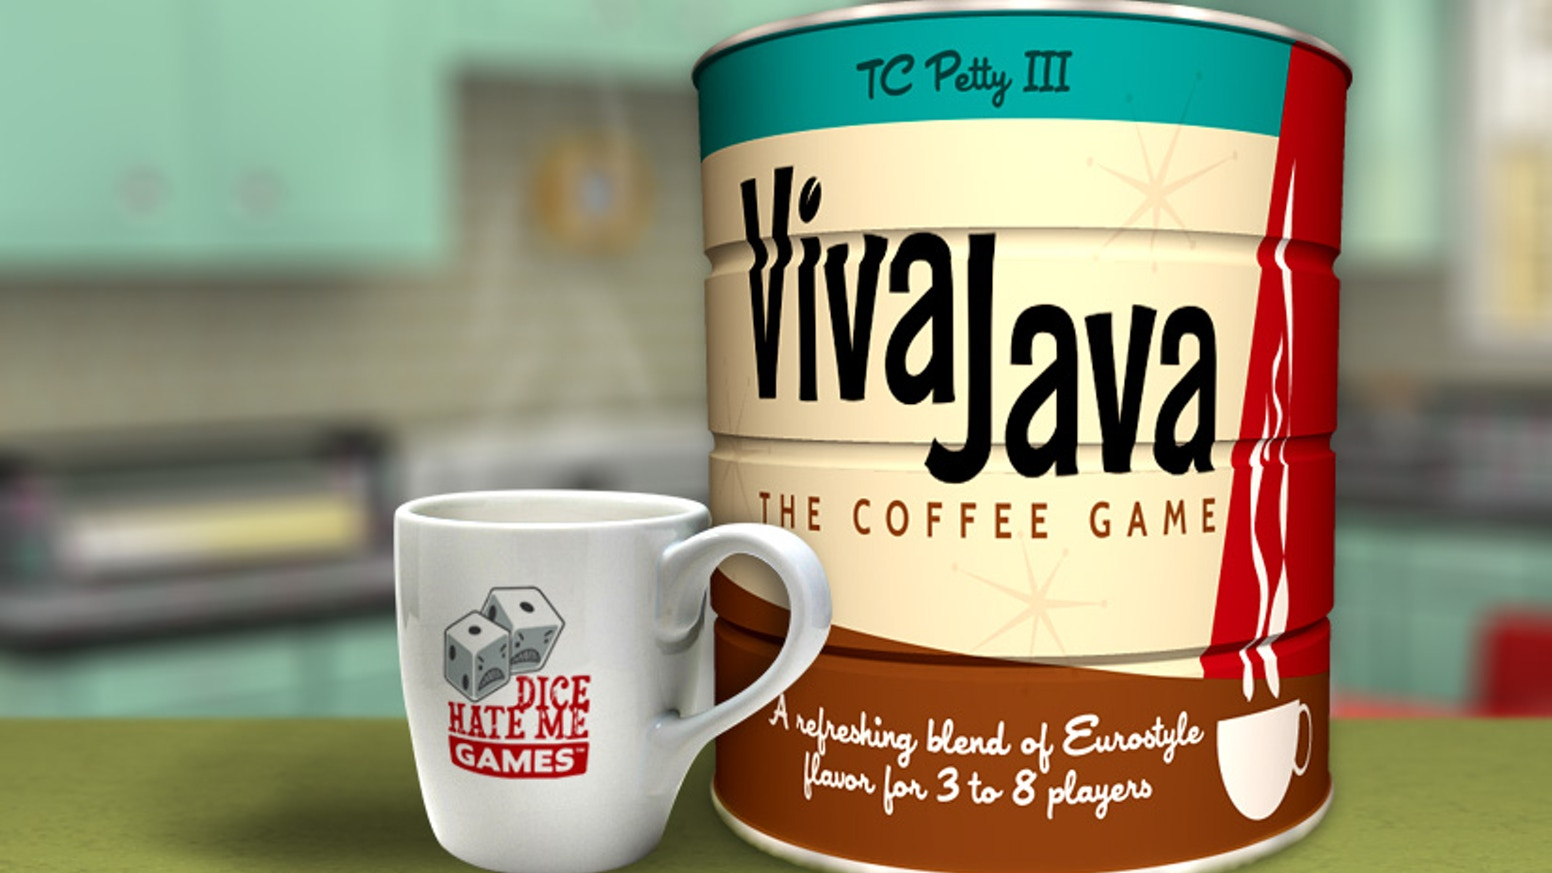 VivaJava: The Coffee Game by Dice Hate Me Games — Kickstarter